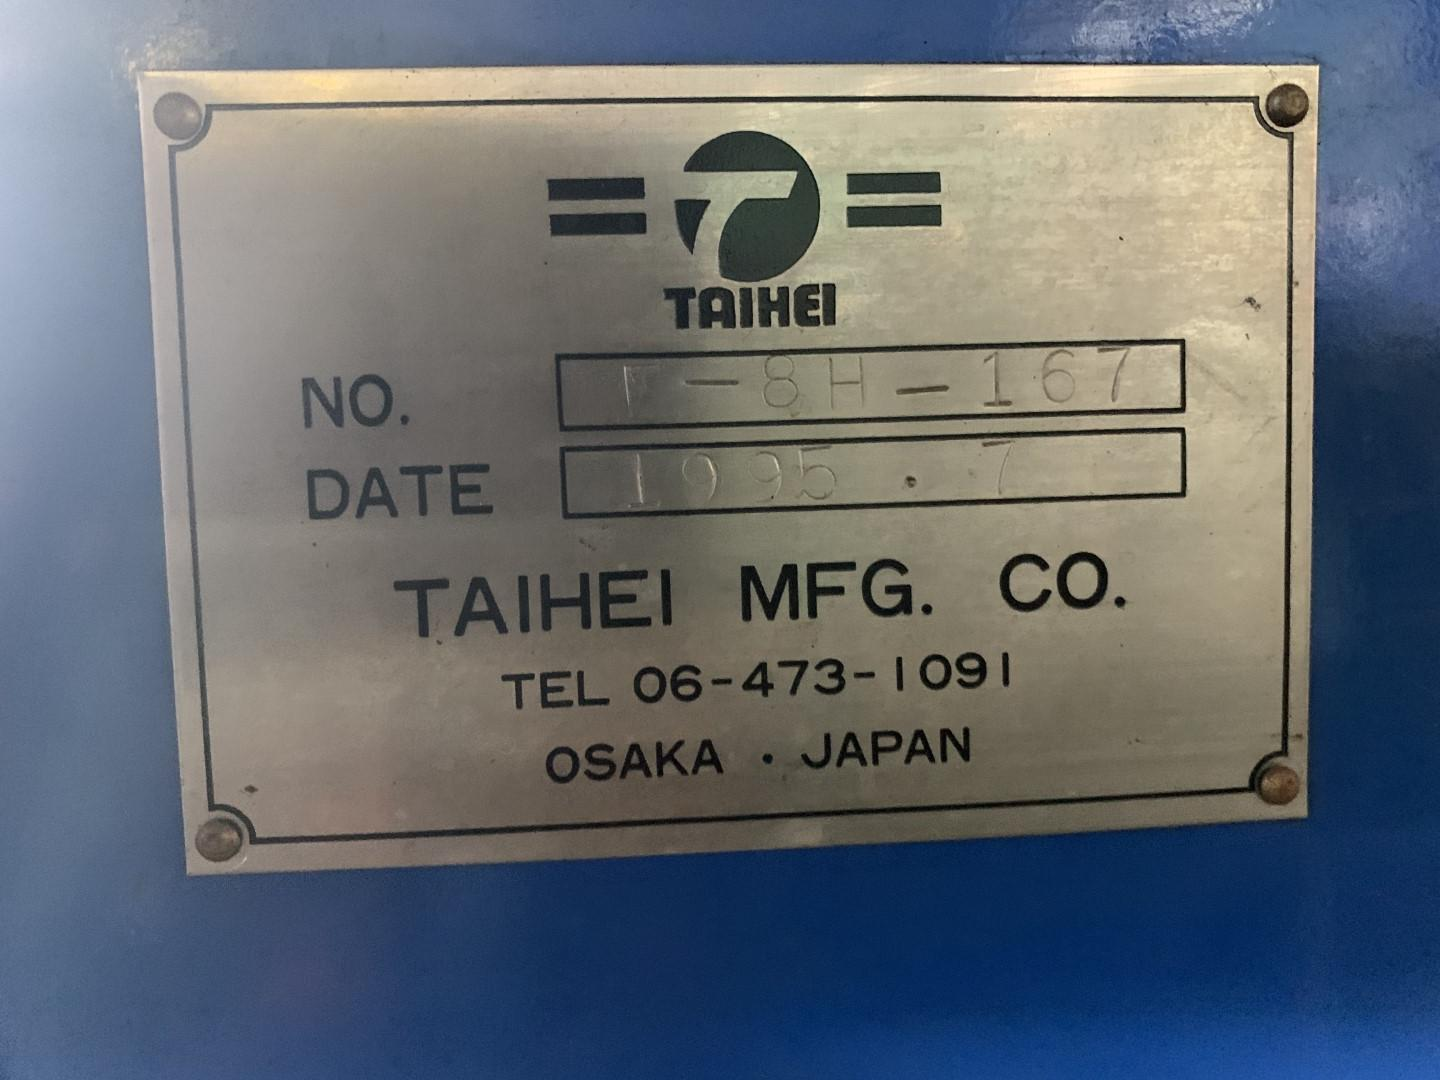 8MM TAIHEI TSF-808S 3 AXIS CNC WIREFORMER : STOCK #10485